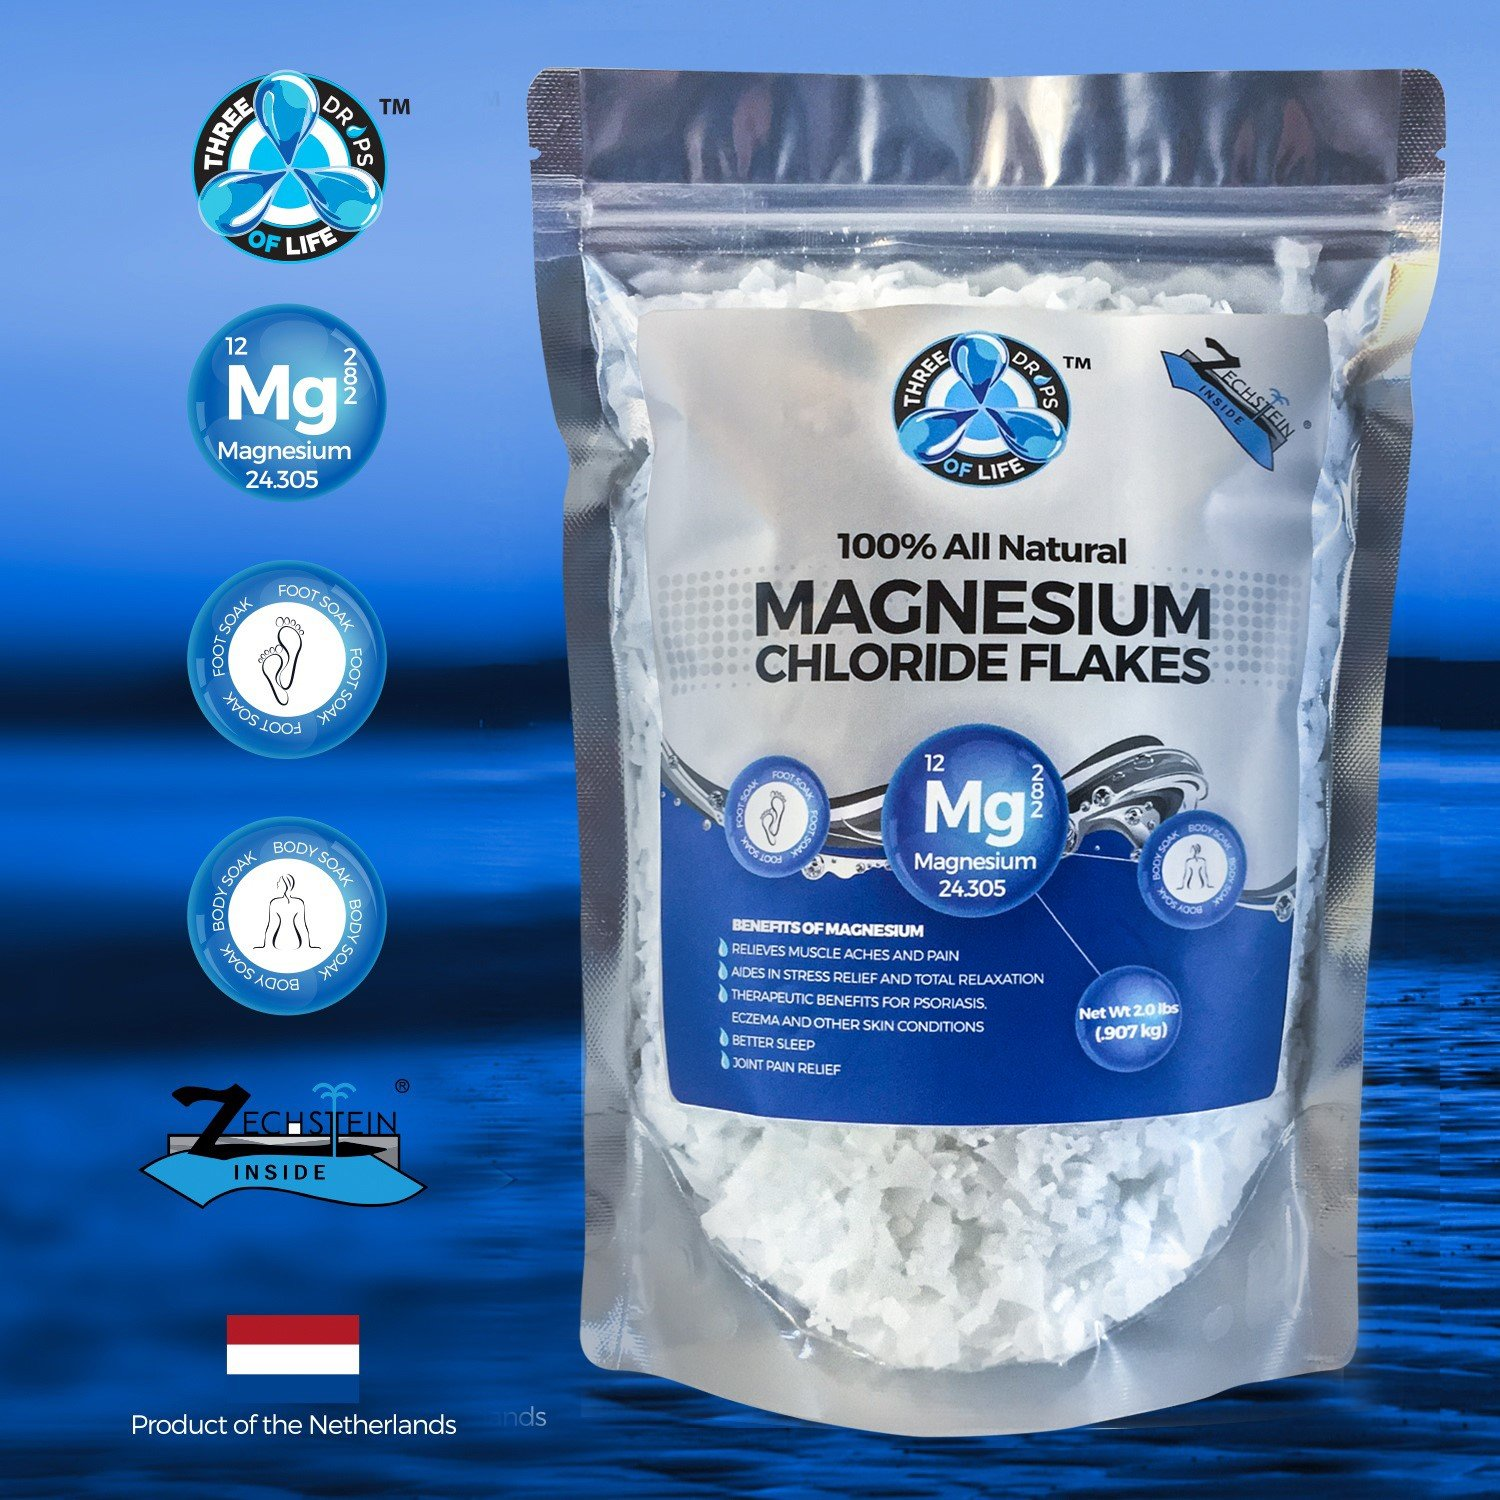 Amazon.com : All Natural Magnesium Chloride Flakes, Best Pure Zechstein Inside for Baths, Foot Soaks and Relaxation, Numerous Health Benefits - 2lb bulk bag ...